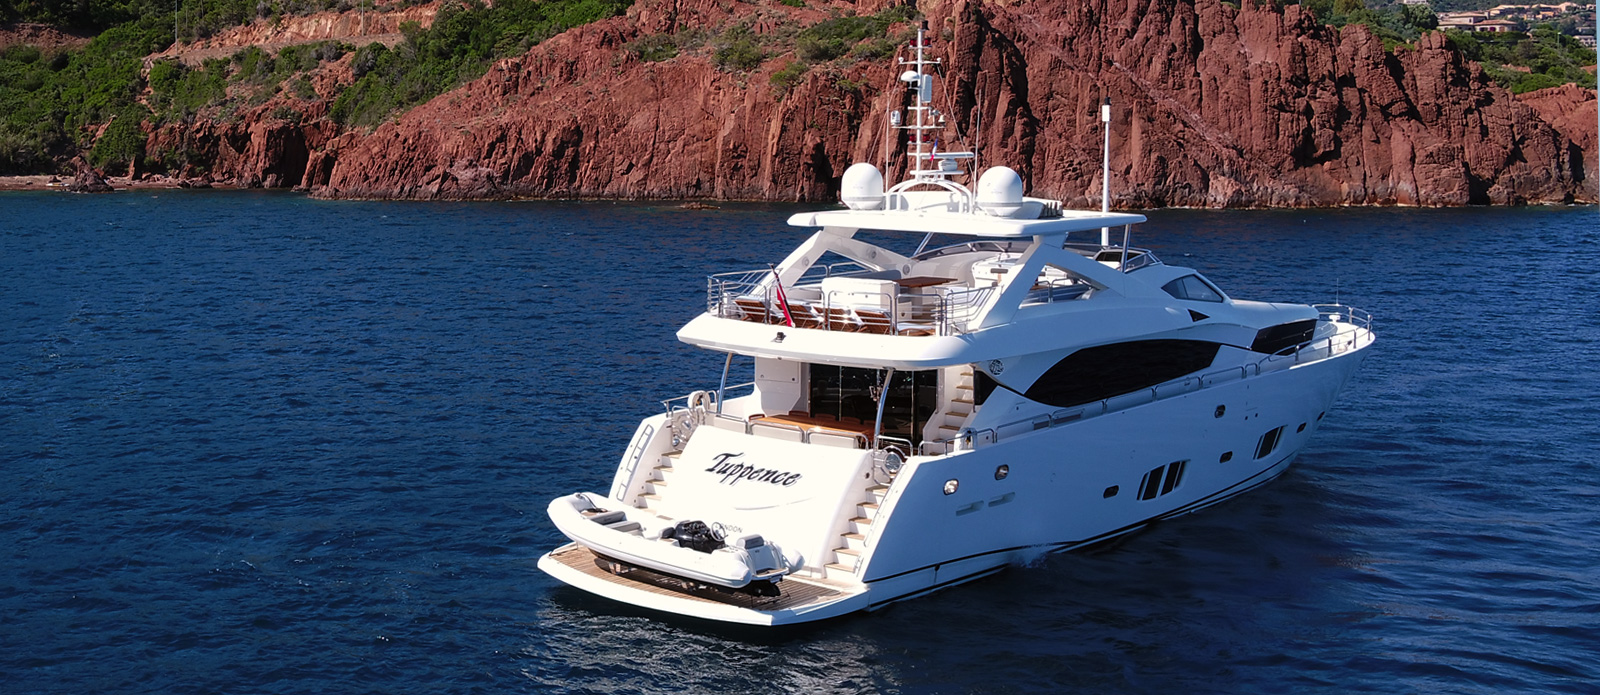 Sunseeker-30-Metre-Yacht-Tuppence---Stern-View---Red-Rocks